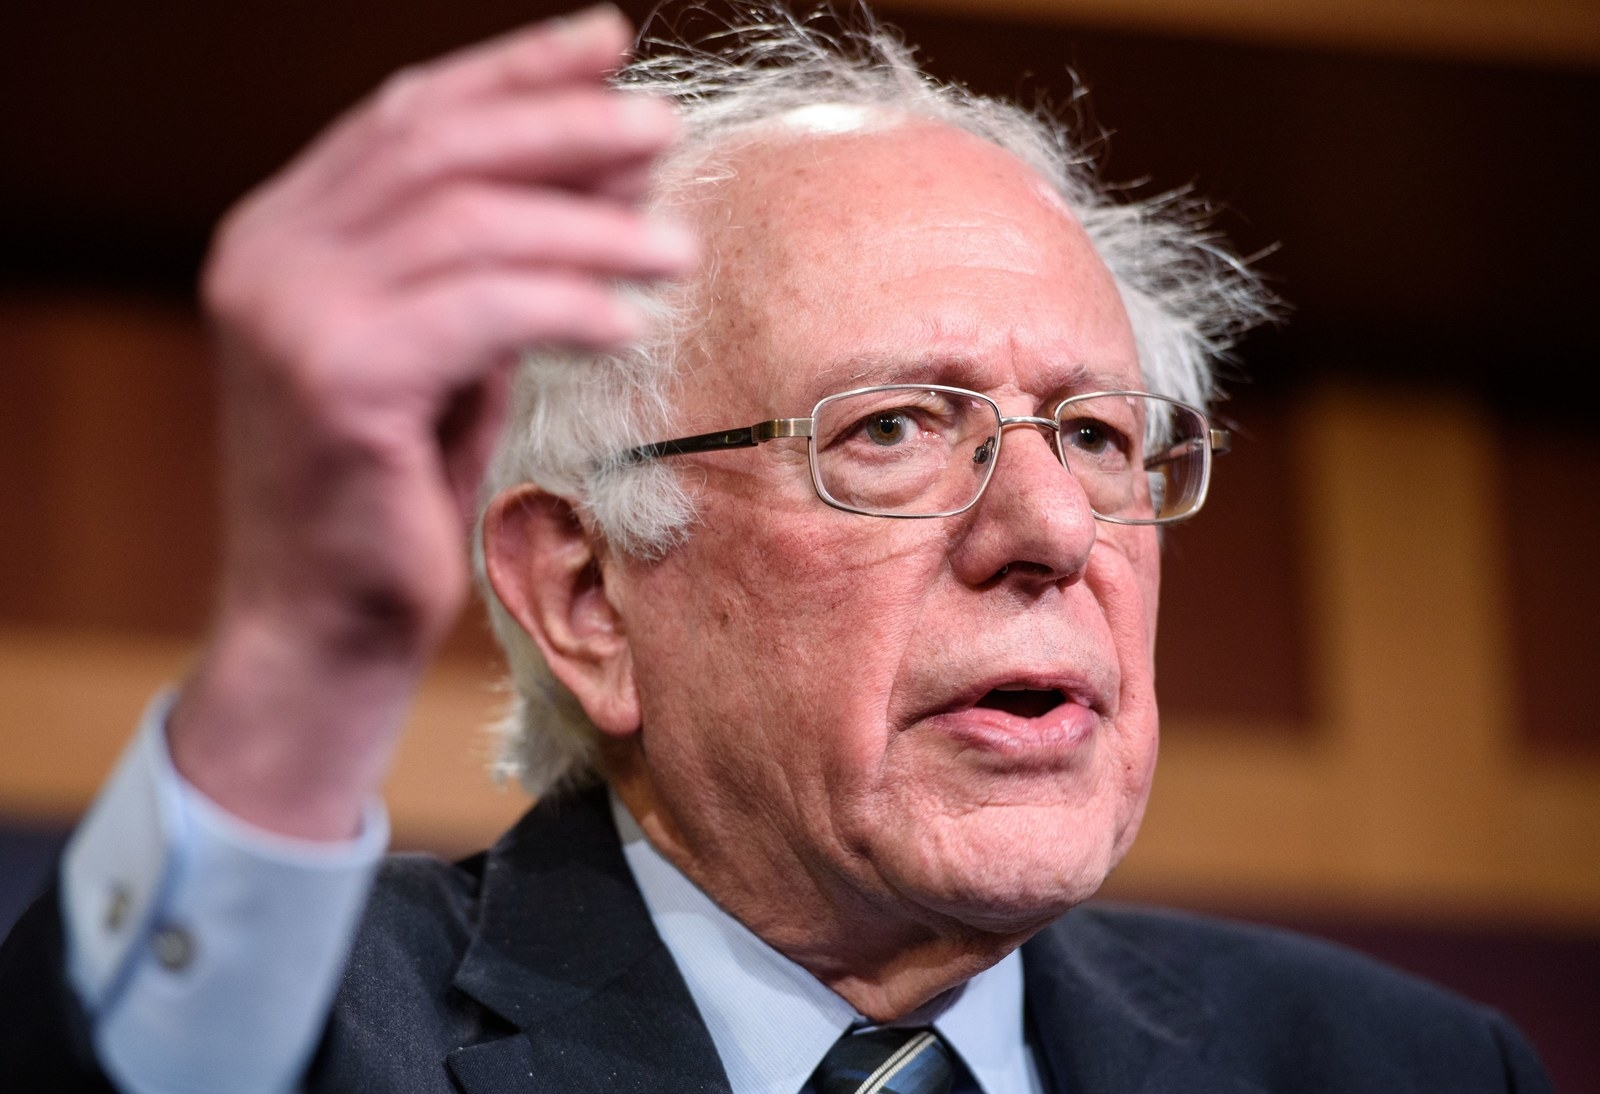 Bernie Sanders Will Meet With Former Women Staffers About 2016 Campaign Sexism And Harassment